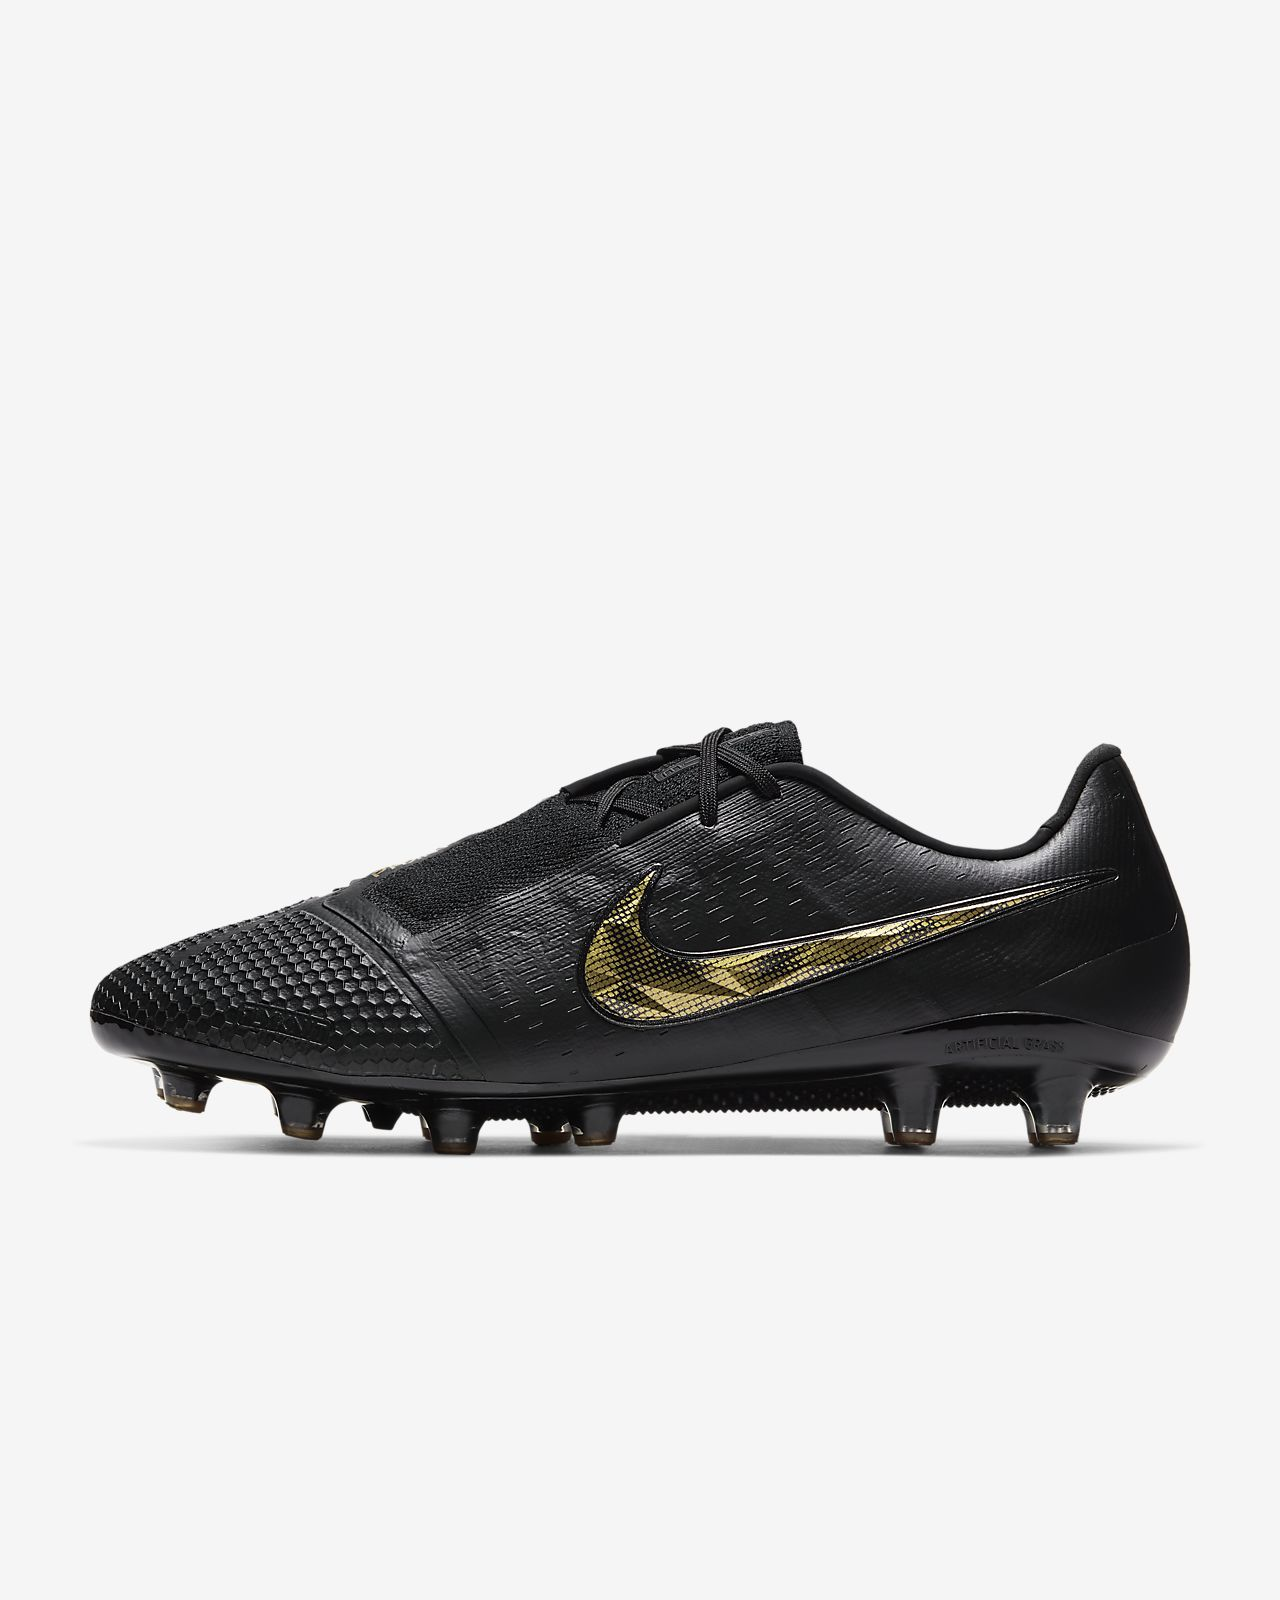 Nike Phantom Venom Elite AG-Pro Artificial-Grass Football Boot